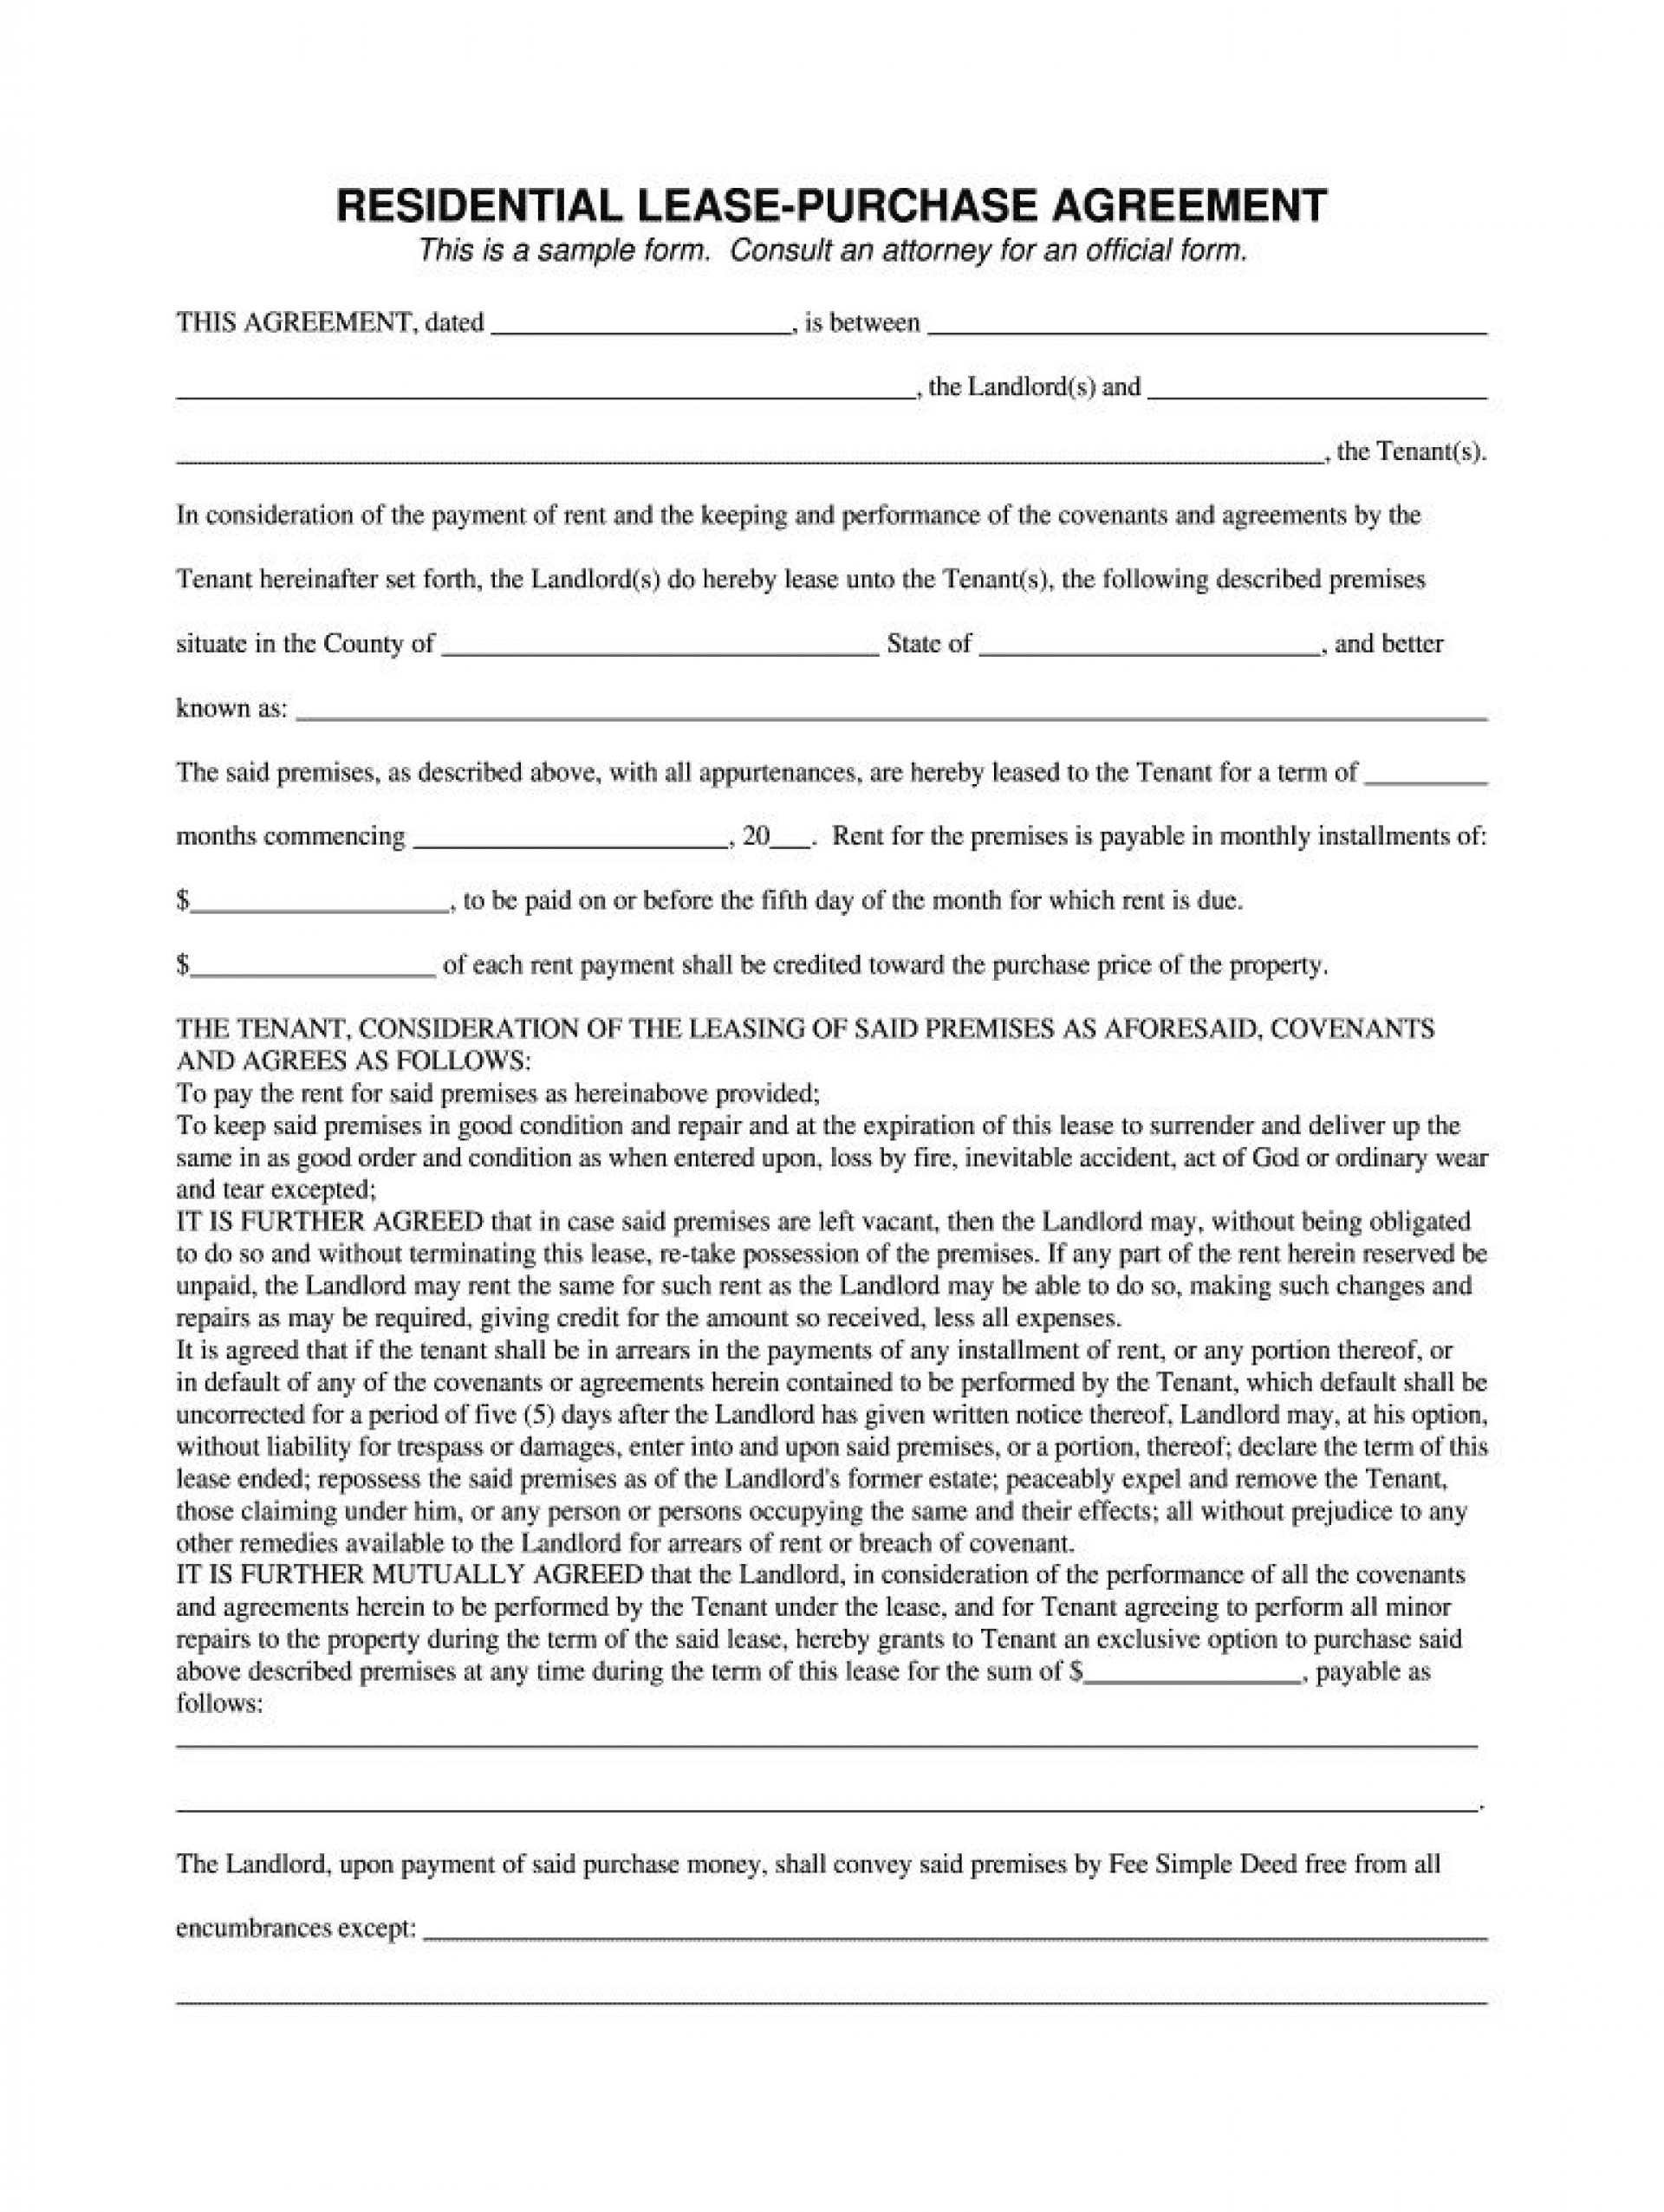 004 Best Rent To Own Template Design  Lease Agreement Canada Example1920